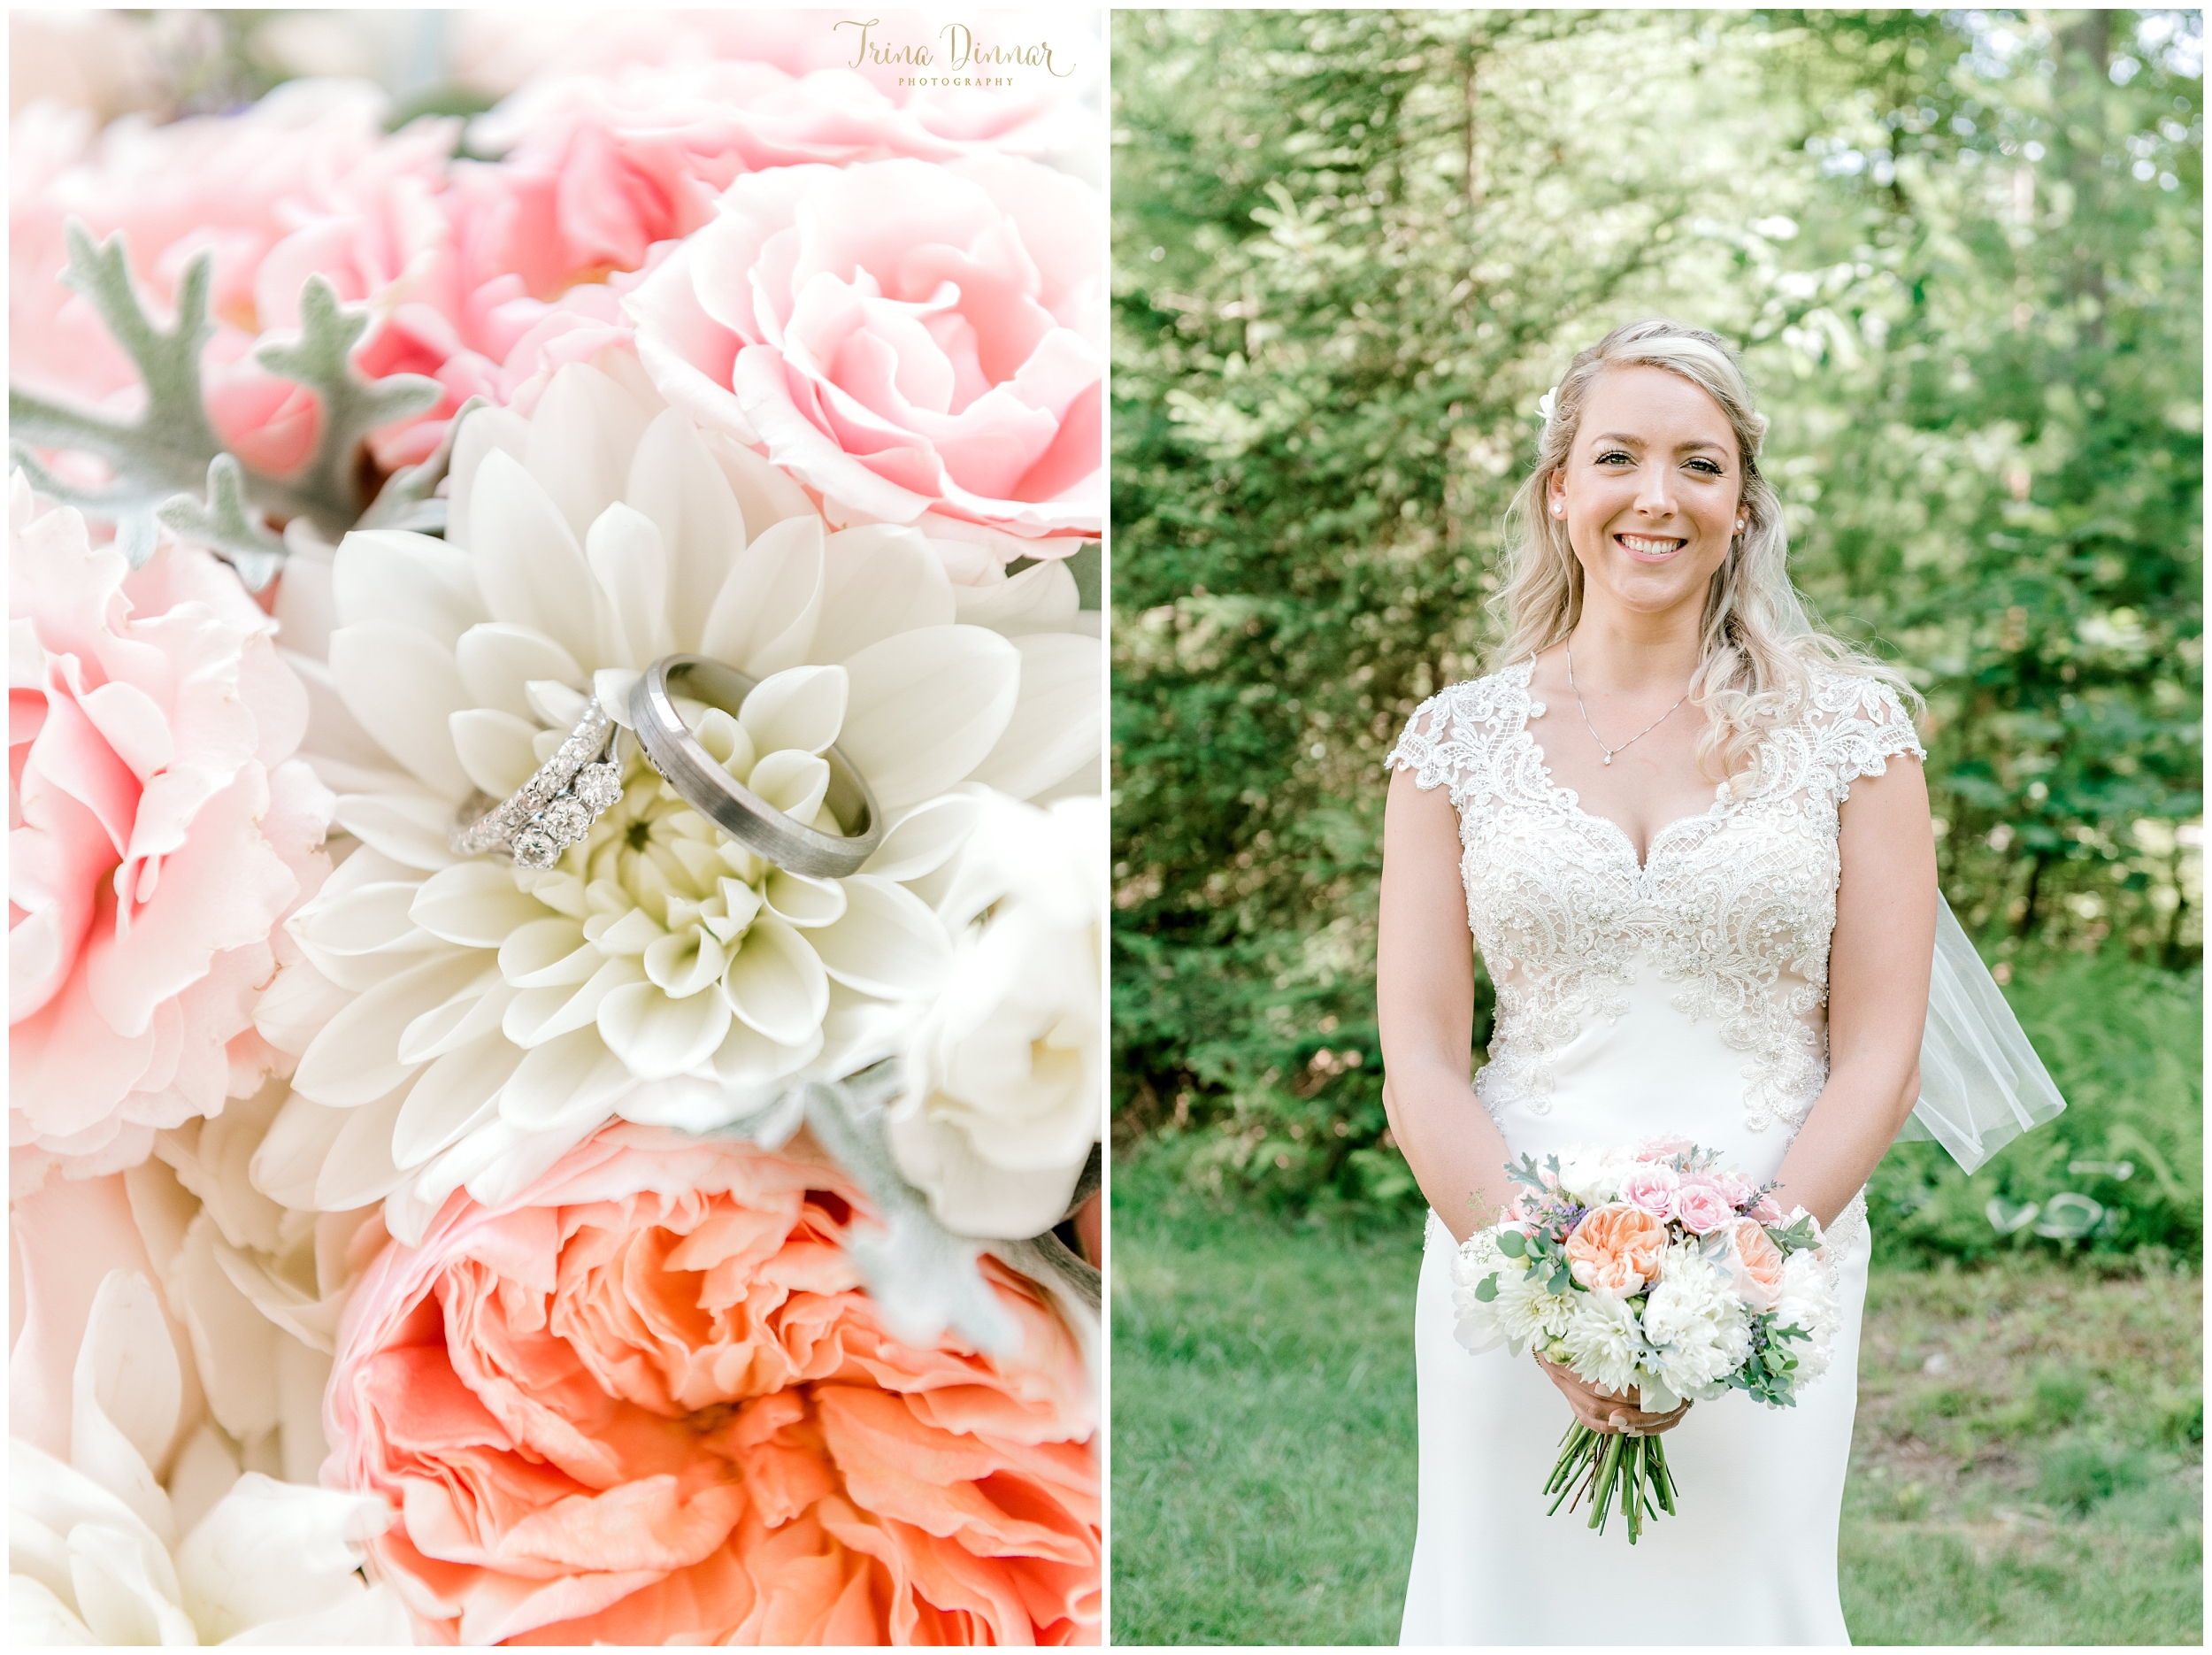 Southern Maine Bridal and Wedding Portraits by Trina Dinnar